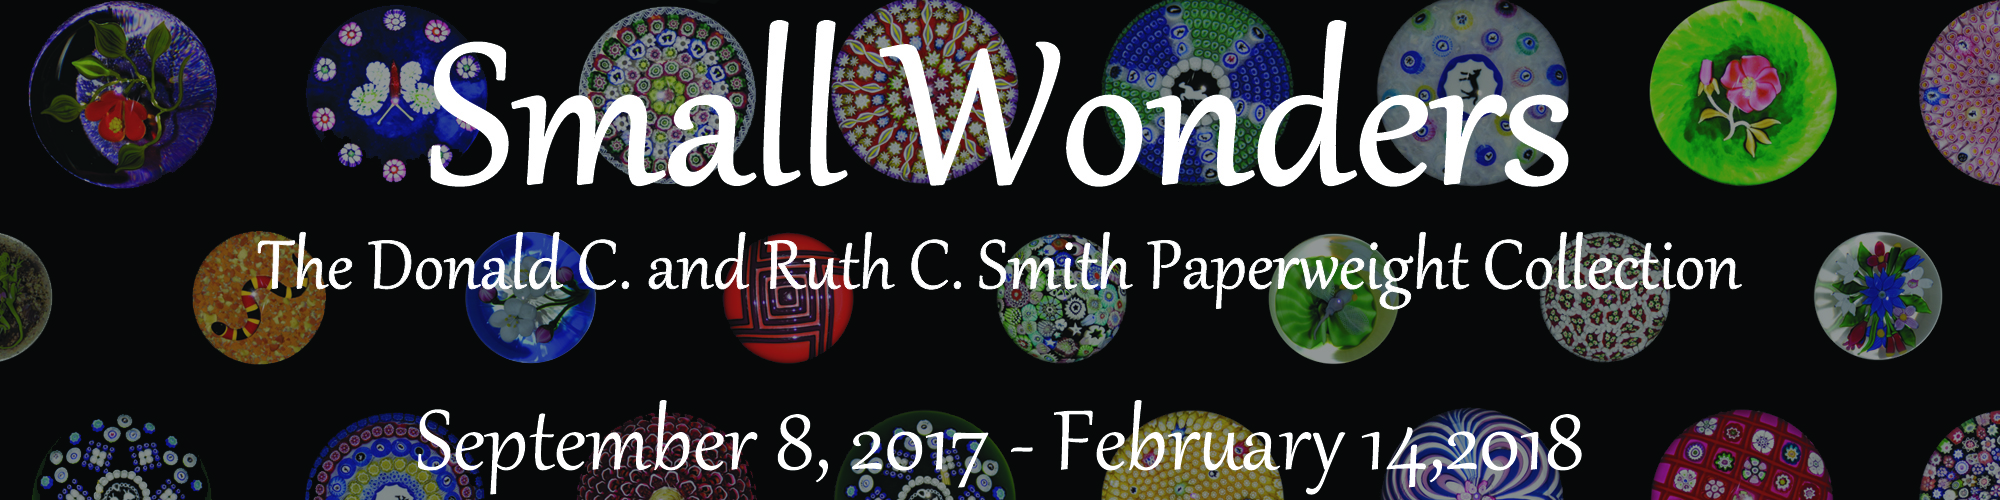 Small Wonders: The Donald C. and Ruth C. Smith Paperweight Collection will be on display in the Forsyth Galleries through February 14, 2018.